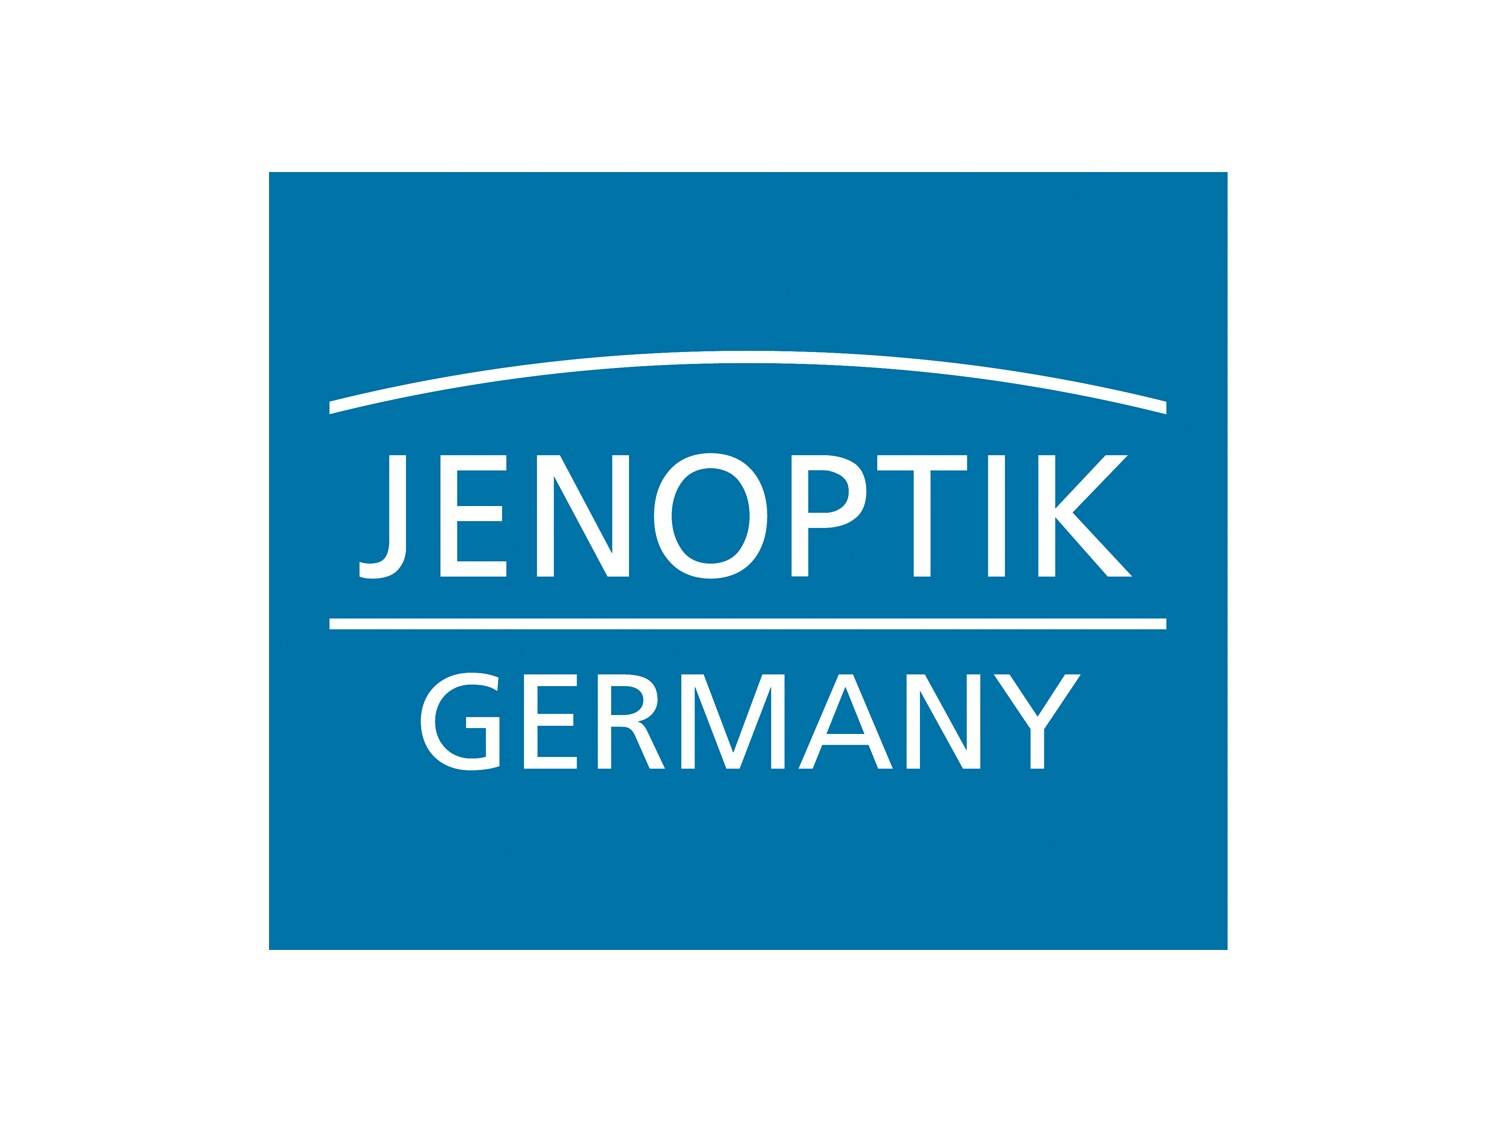 The transition to the worldwide unified umbrella brand Jenoptik took place step by step from 2006 onwards.